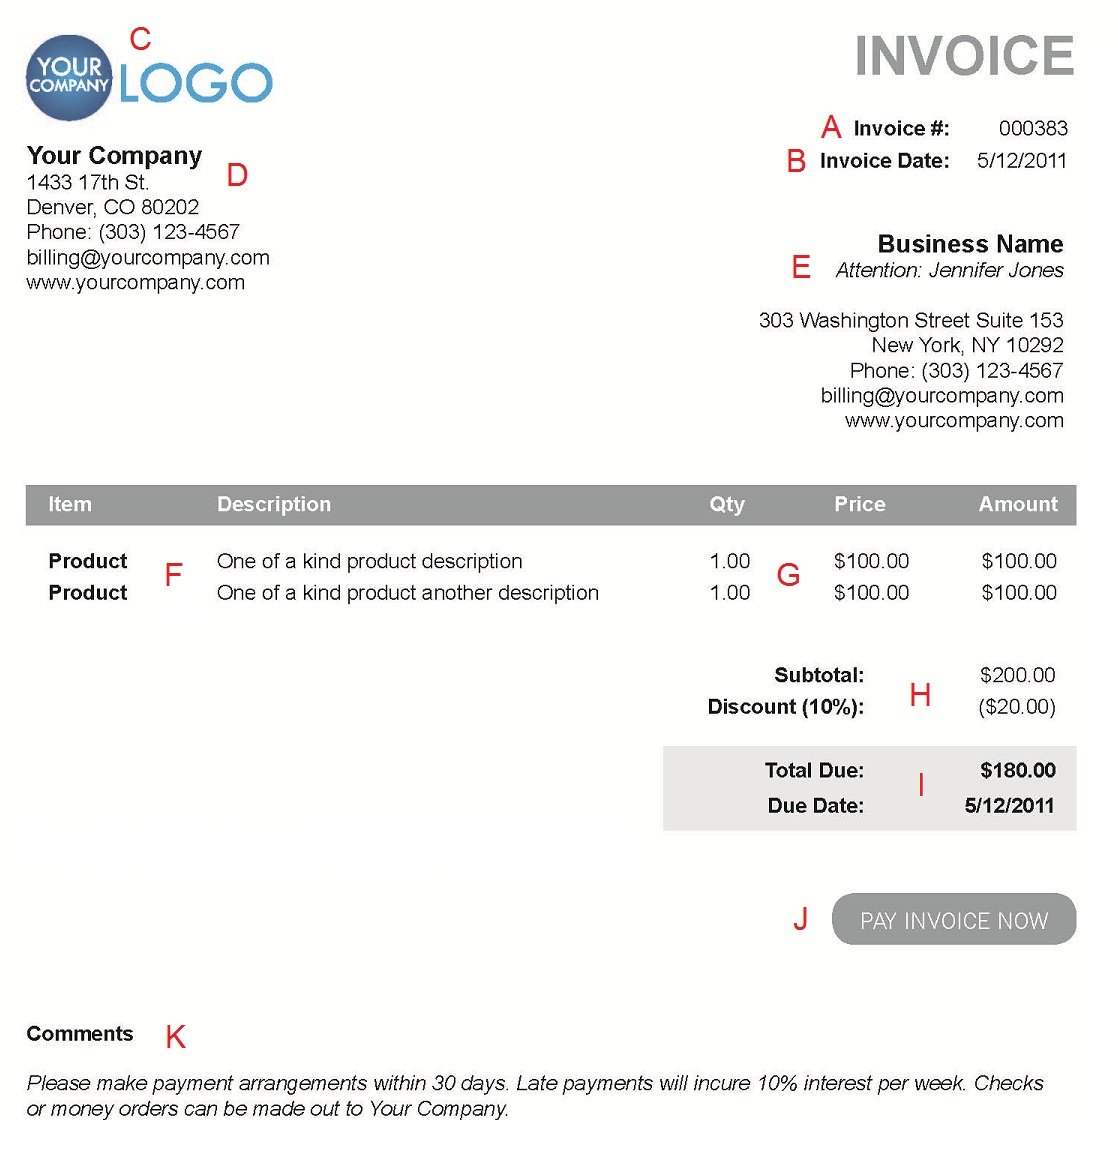 Darkfaderus  Personable The  Different Sections Of An Electronic Payment Invoice With Goodlooking A  With Lovely Acknowledge Receipt Email Also Receipt For Egg Salad In Addition Sample Deposit Receipt And Blank Payment Receipt As Well As Fake Receipt Maker Free Additionally Receipt Form Template Word From Paysimplecom With Darkfaderus  Goodlooking The  Different Sections Of An Electronic Payment Invoice With Lovely A  And Personable Acknowledge Receipt Email Also Receipt For Egg Salad In Addition Sample Deposit Receipt From Paysimplecom